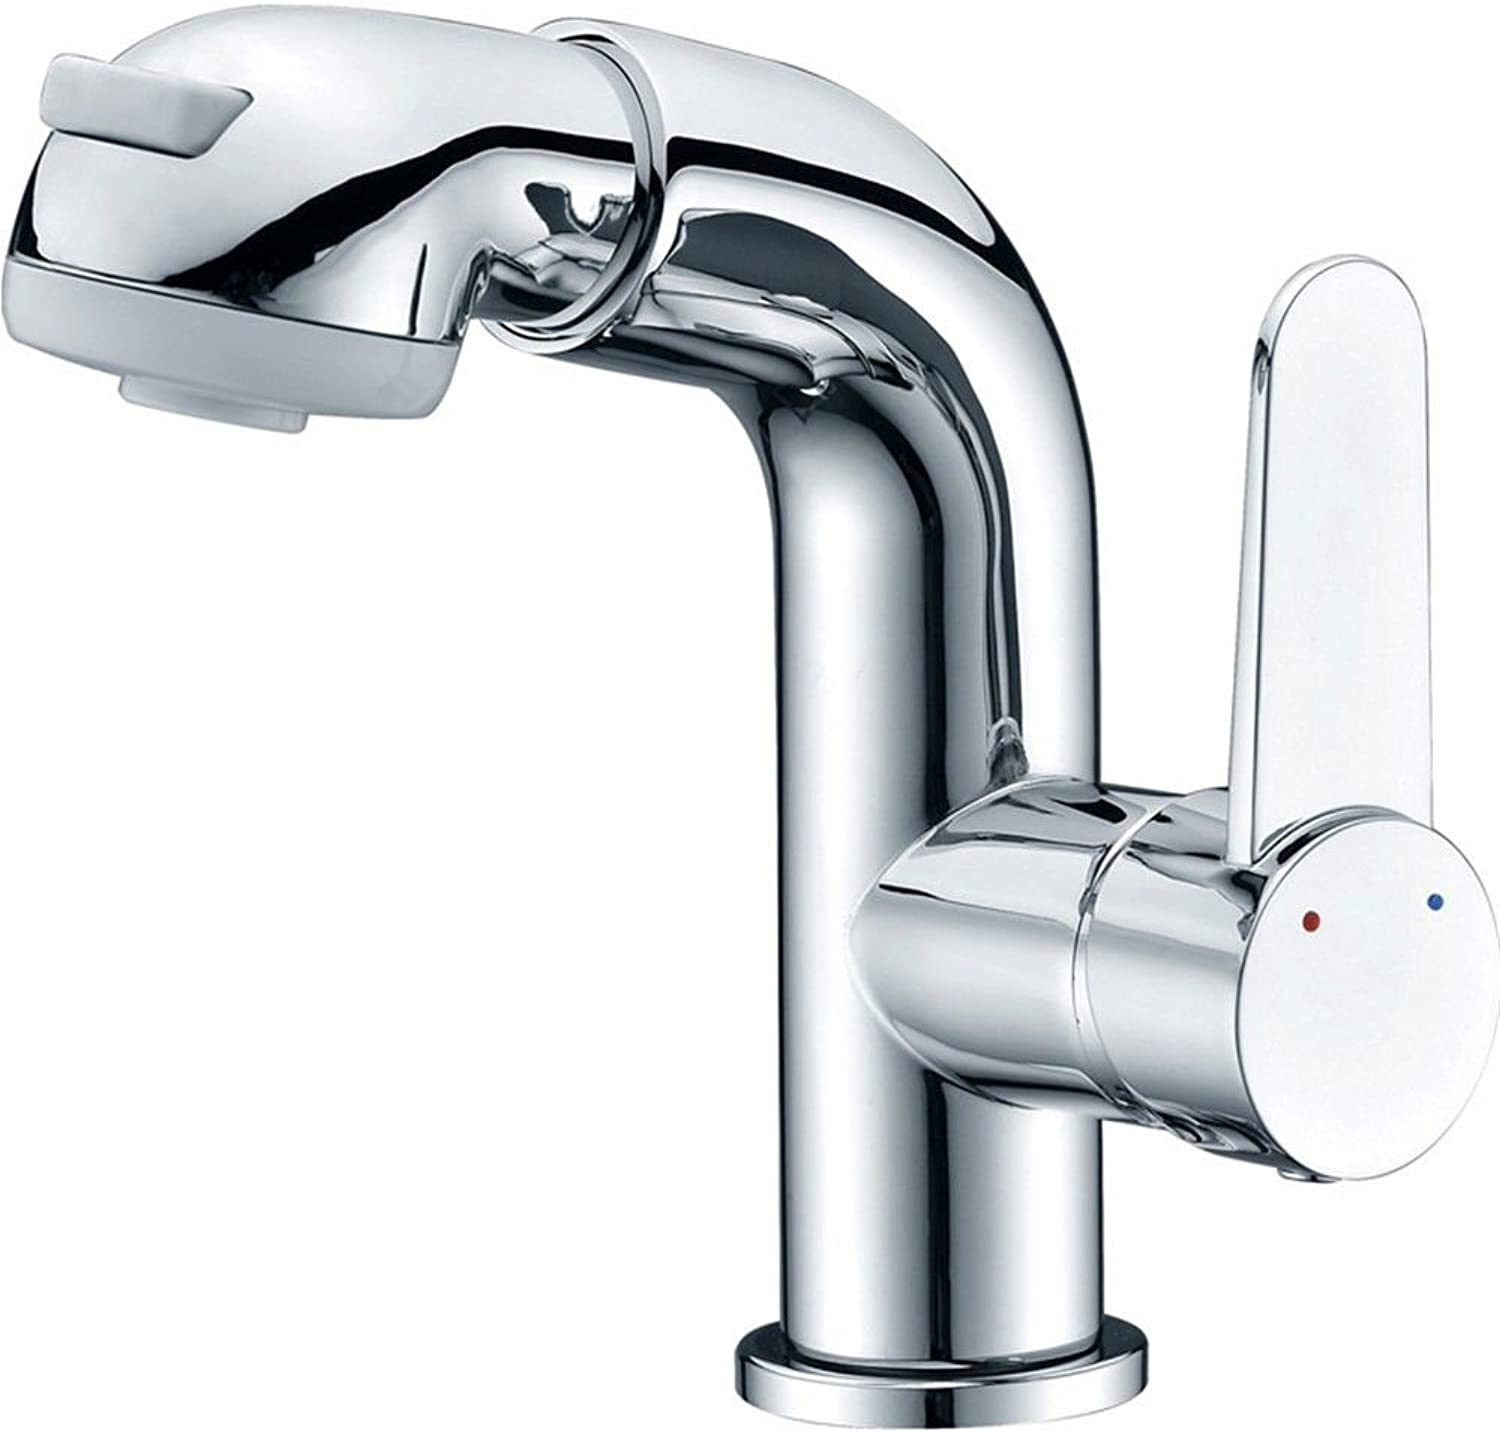 Lalaky Taps Faucet Kitchen Mixer Sink Waterfall Bathroom Mixer Basin Mixer Tap for Kitchen Bathroom and Washroom Copper Hot Water Nozzle